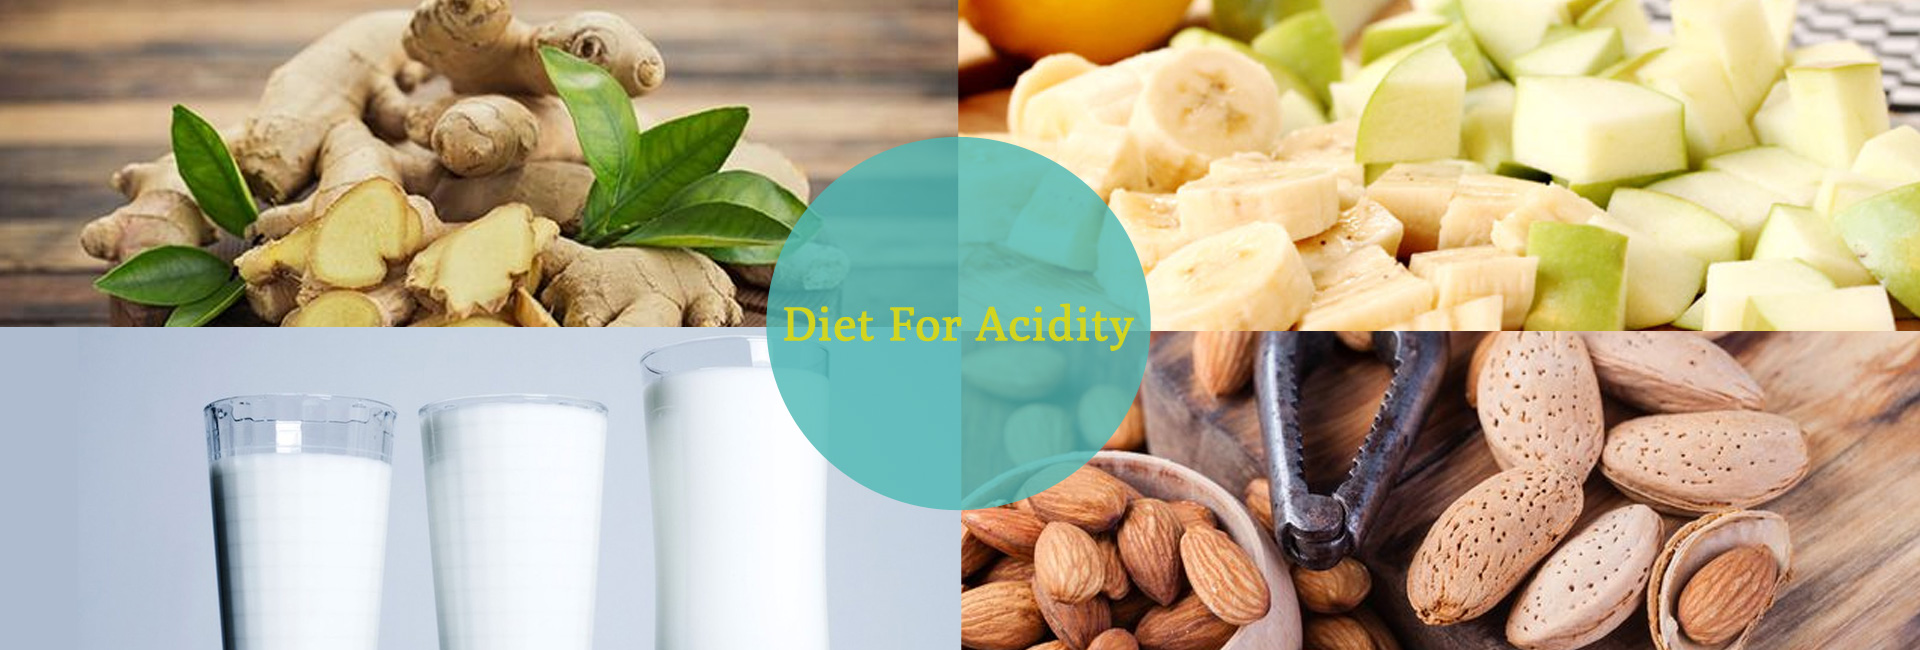 Diet For Acidity In Al Mirfa